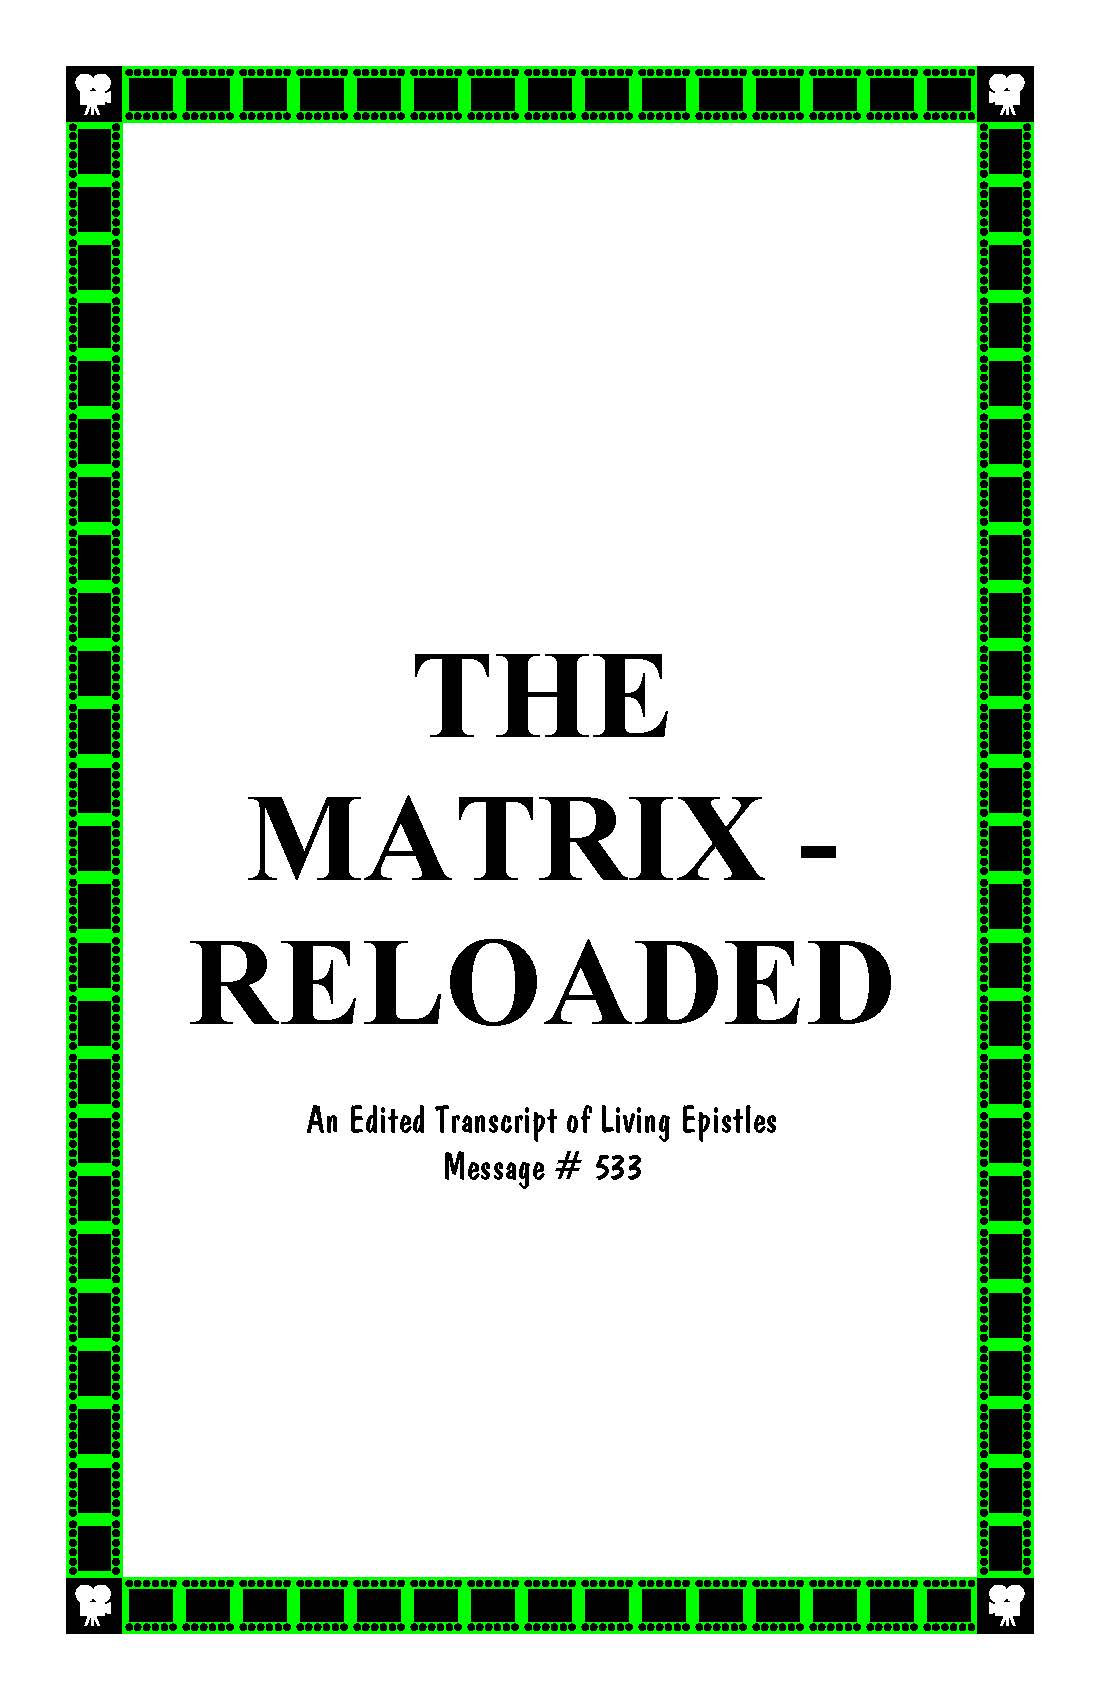 MATRIX RELOADED 533 LEM BOOK COVER 030116